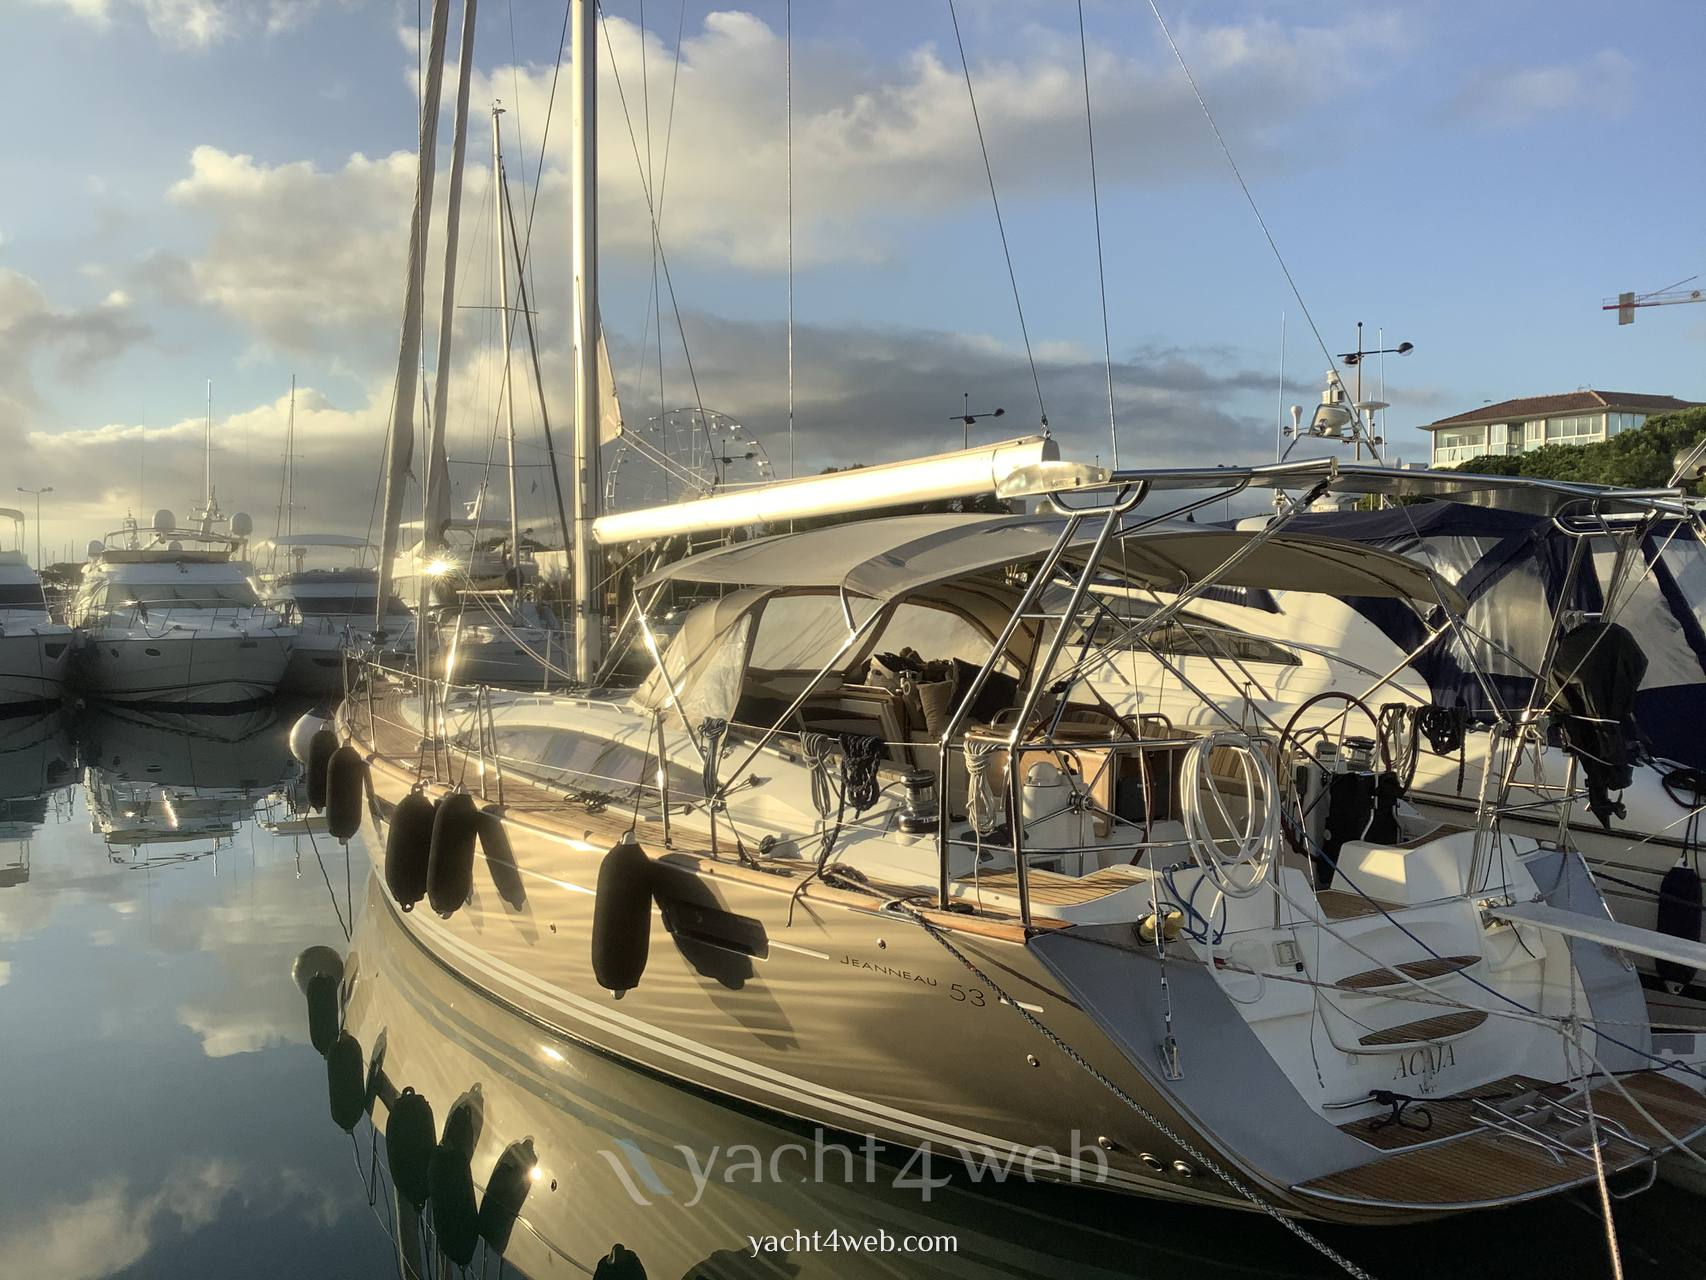 JEANNEAU 53 Sailing boat used for sale